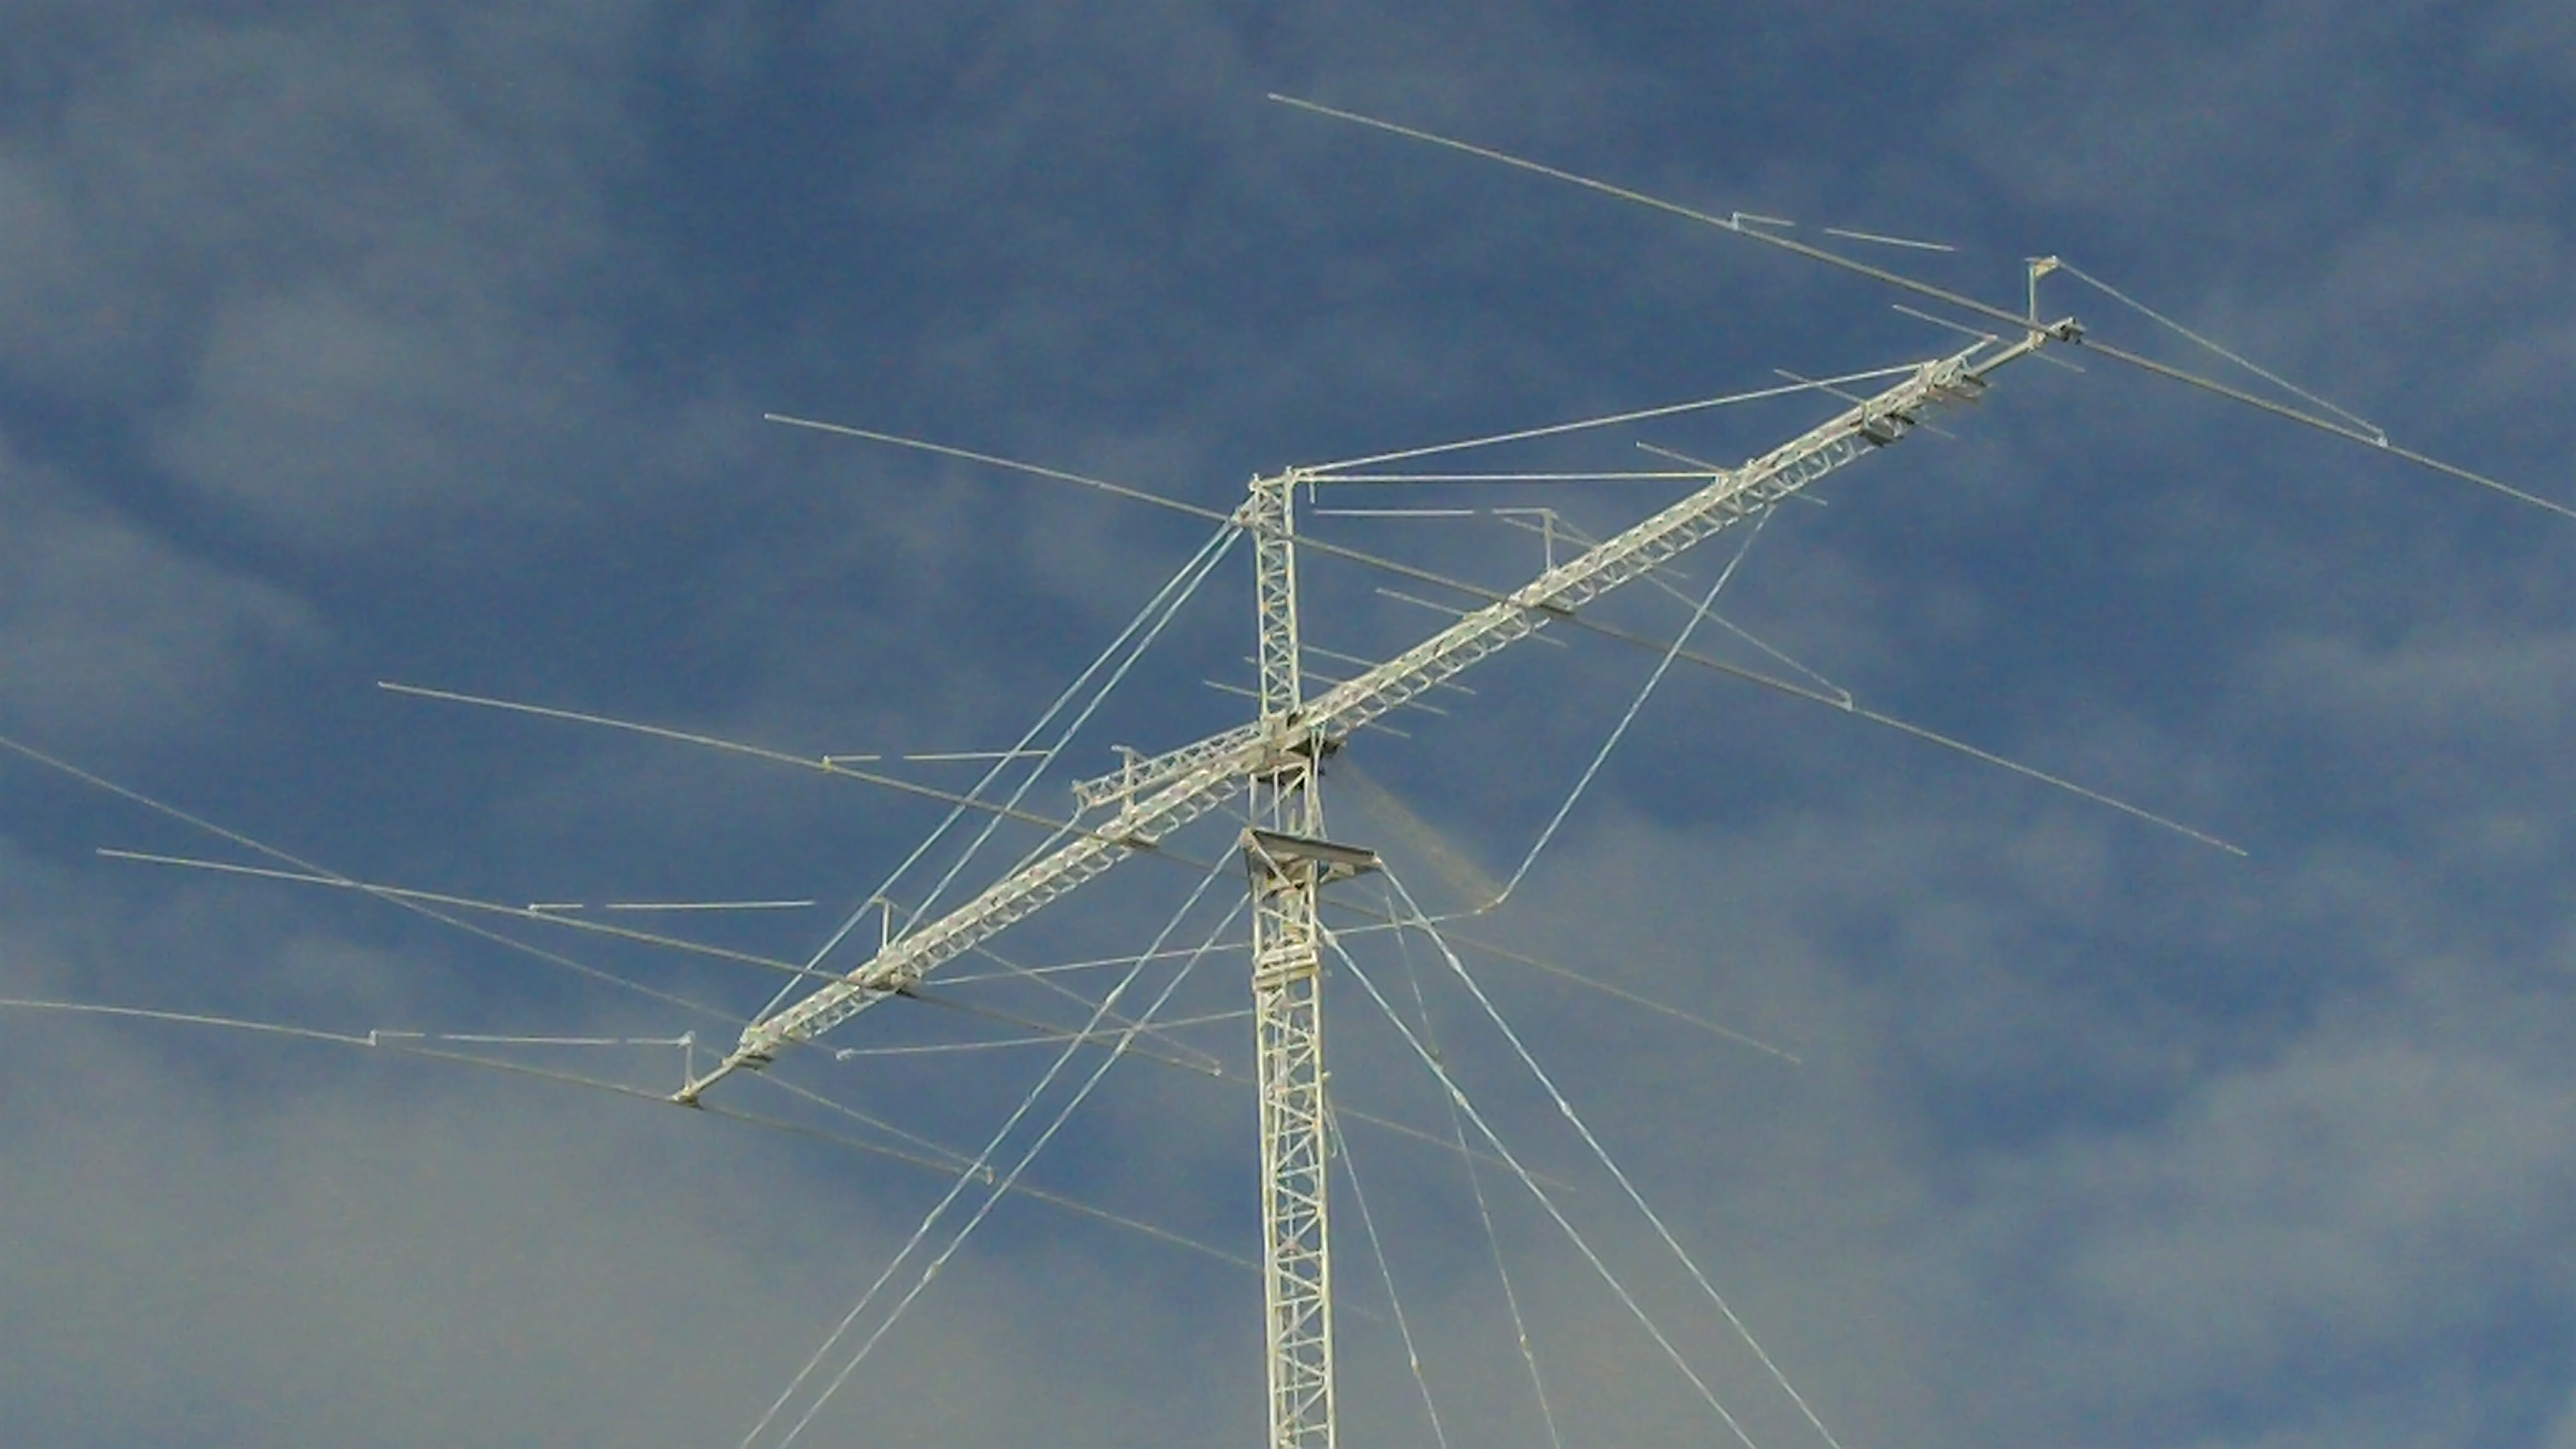 One Square Meter In Square Feet Low Band Antennas K5go Amp N5dx Contest Station